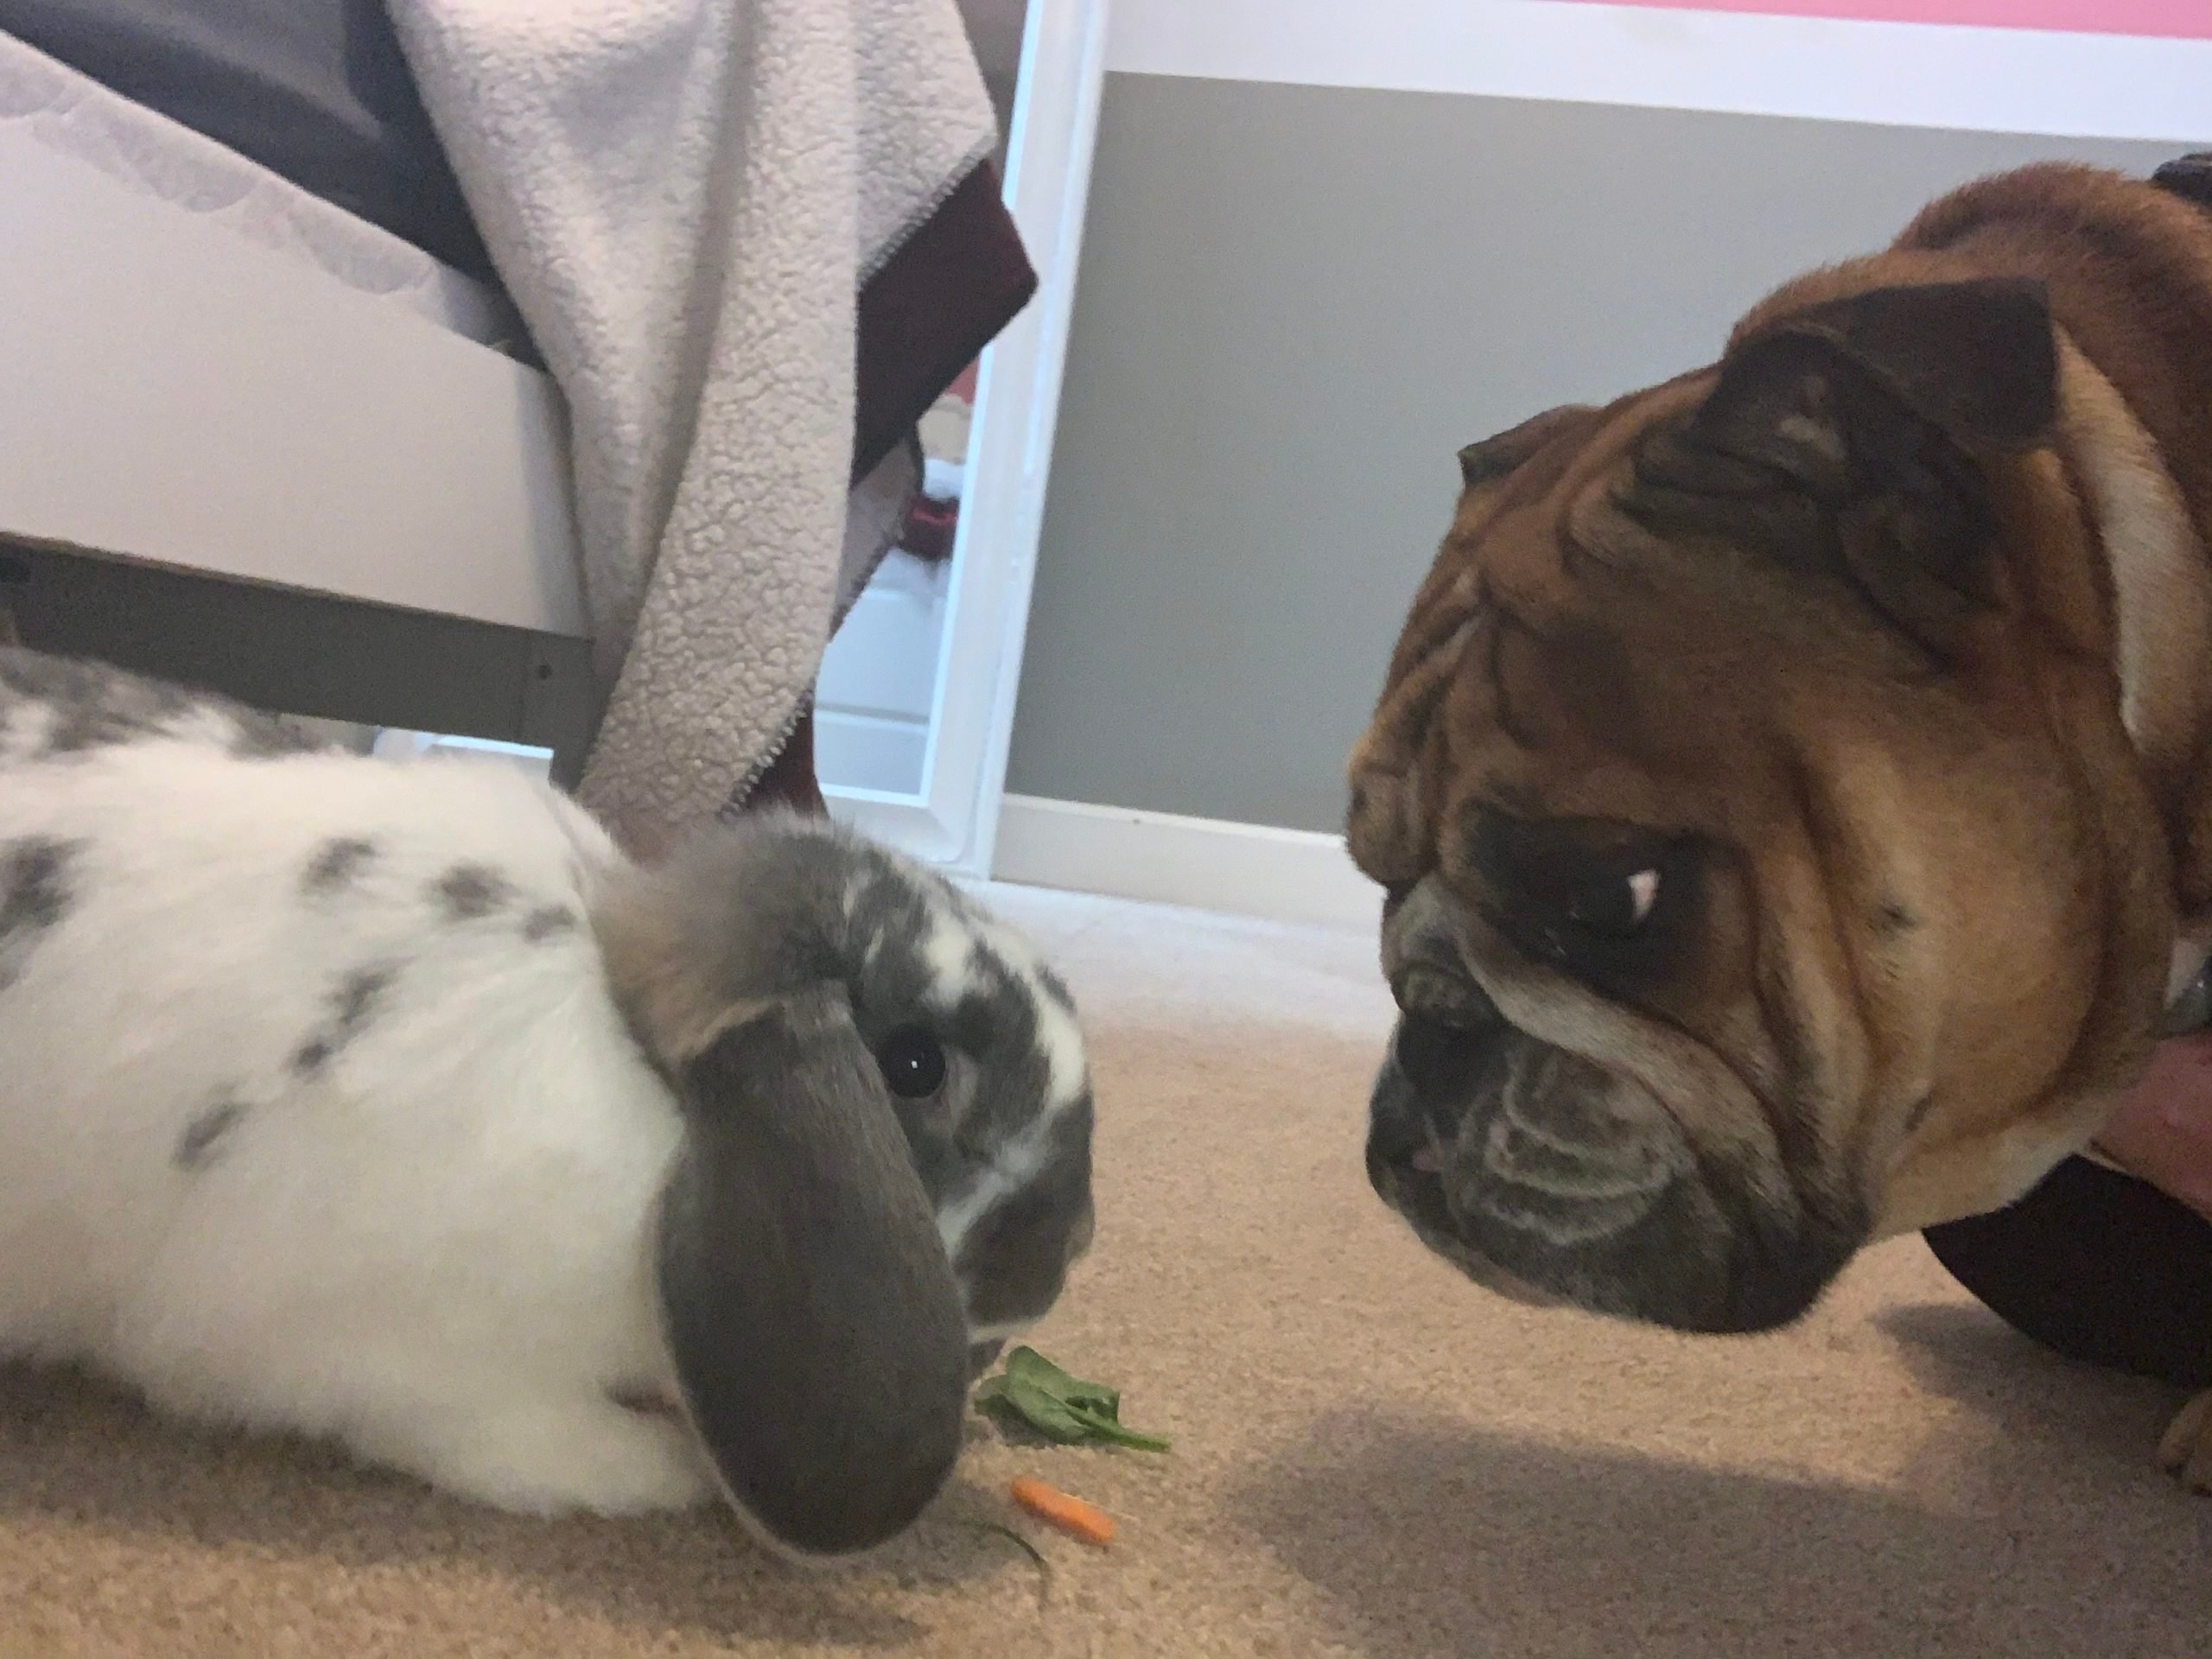 a bunny and dog share a staring contest